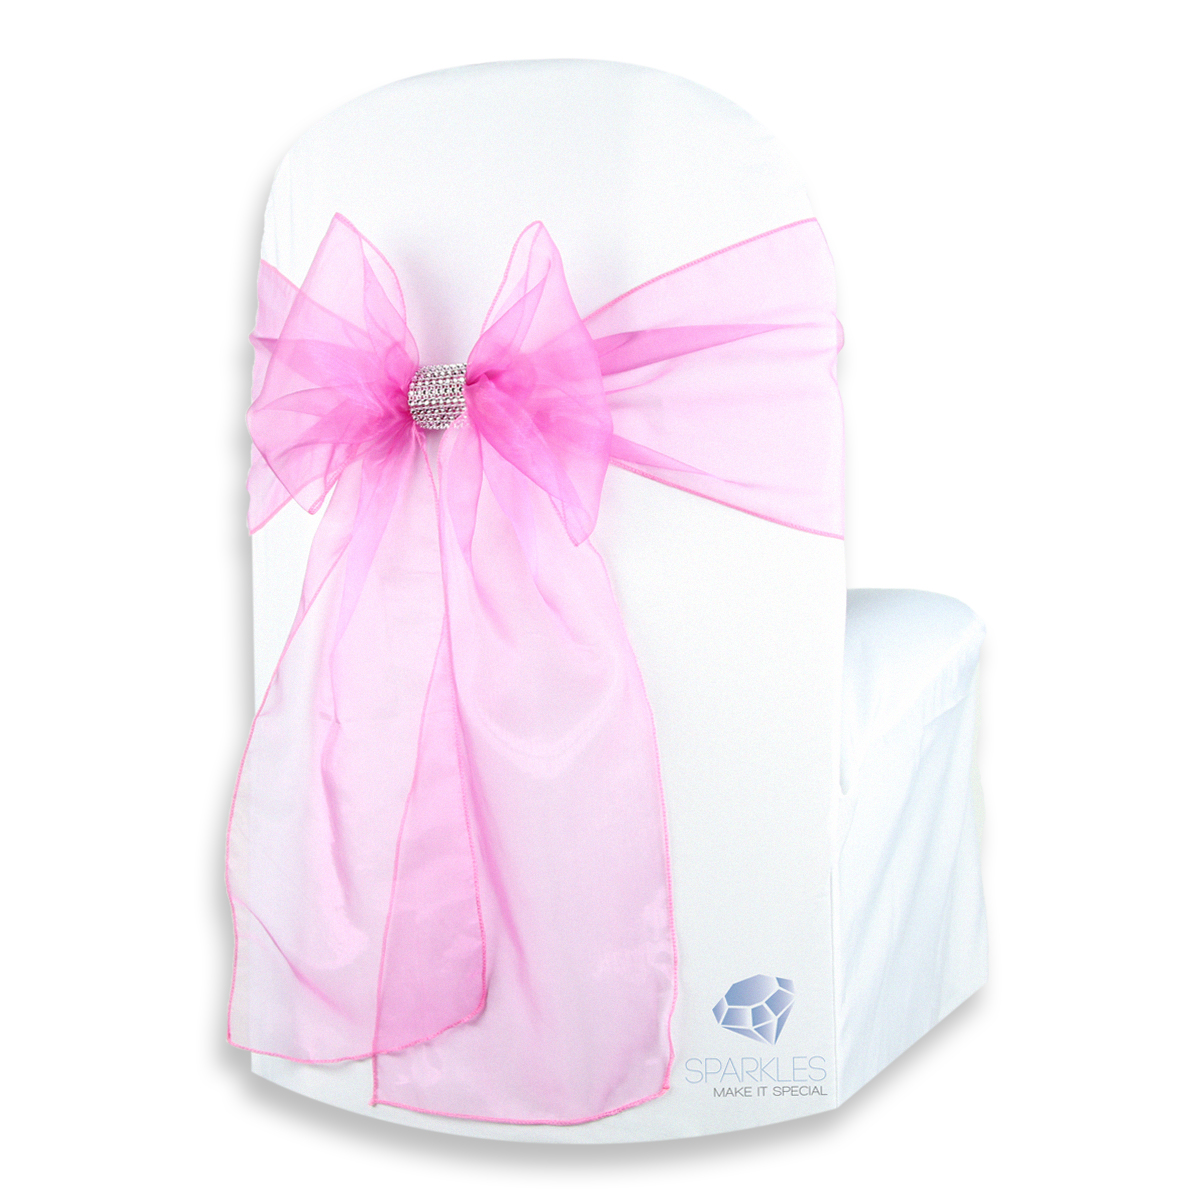 25-pcs-Organza-Chair-Cover-Bow-Sash-108-034-x8-034-Wedding-Party-Banquet-Reception